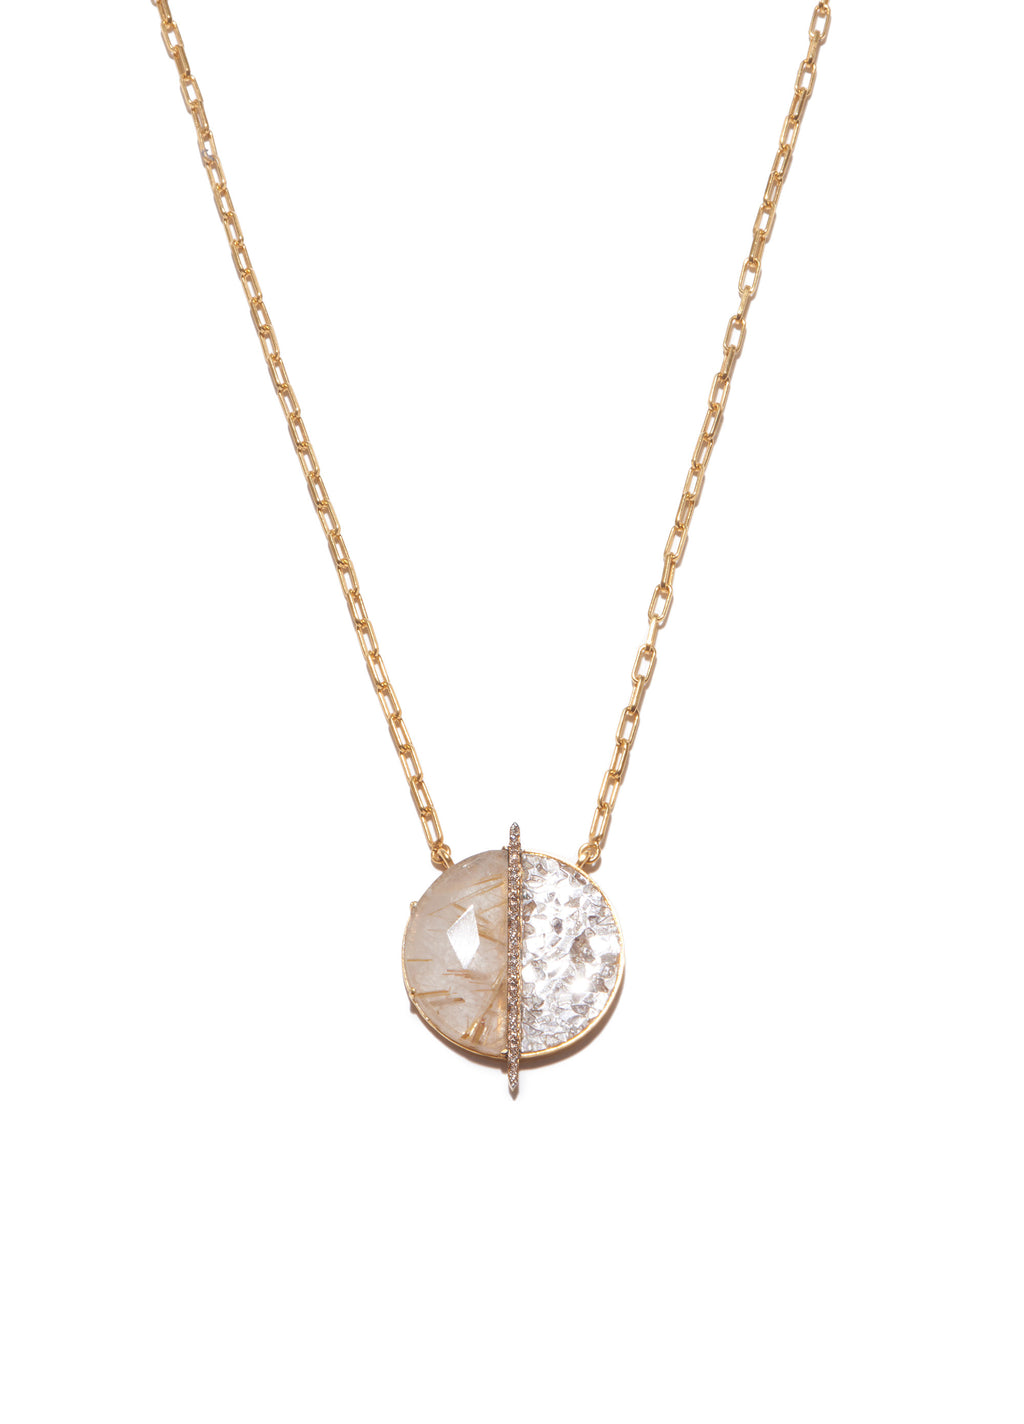 gold quartz and diamond pendant necklace